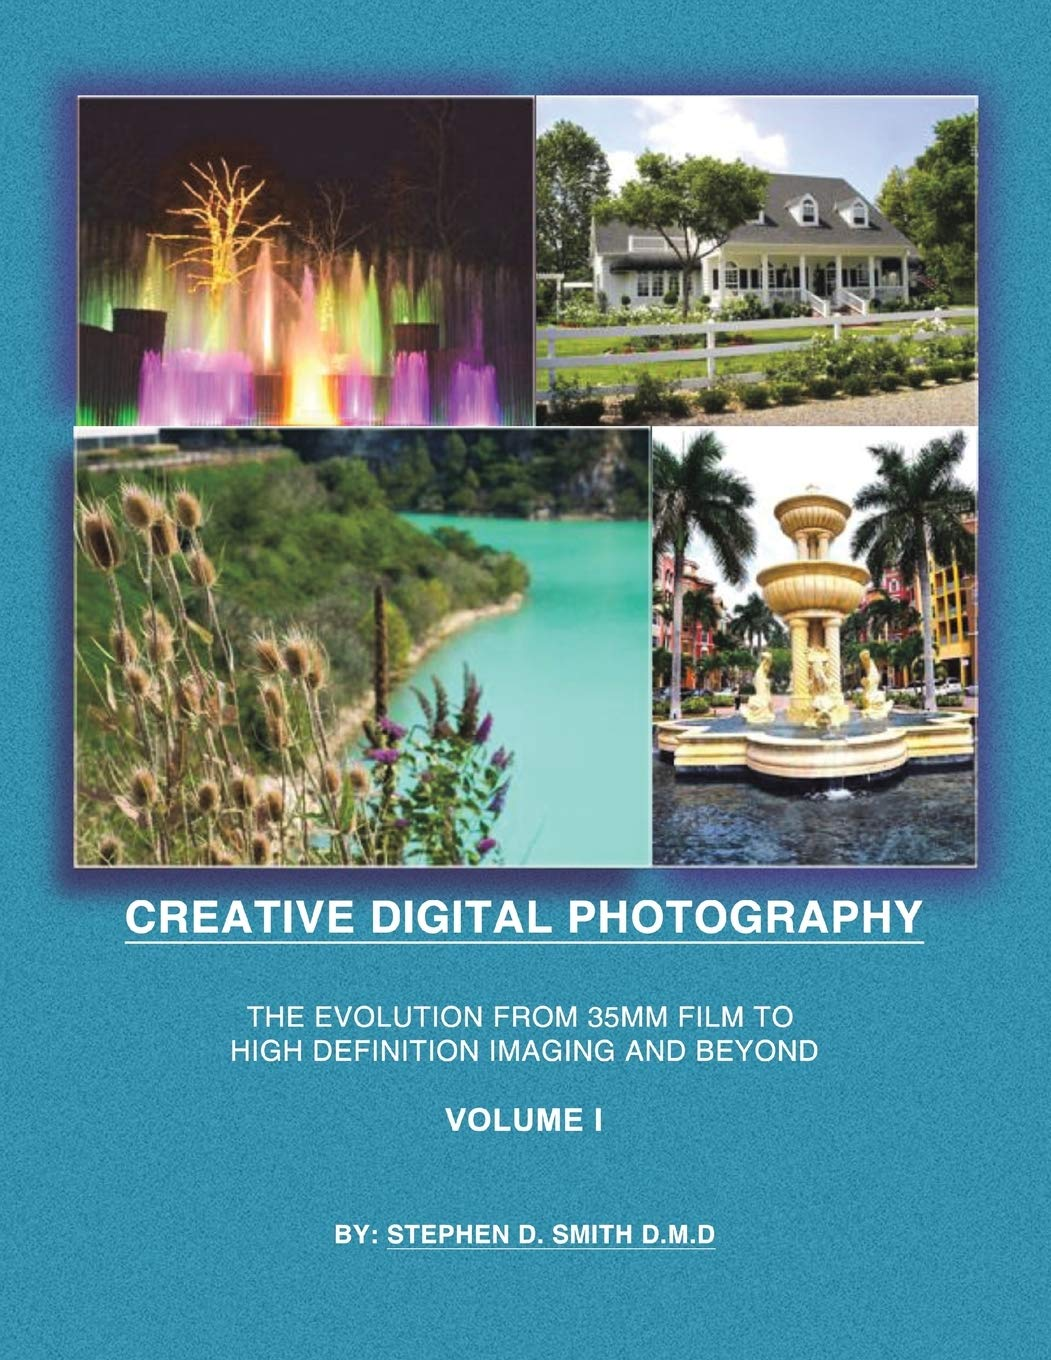 Creative Digital Photography The Evolution From 35mm Film To High Definition Imaging And Beyond Volume One Smith D M D Stephen D 9781495809606 Amazon Com Books